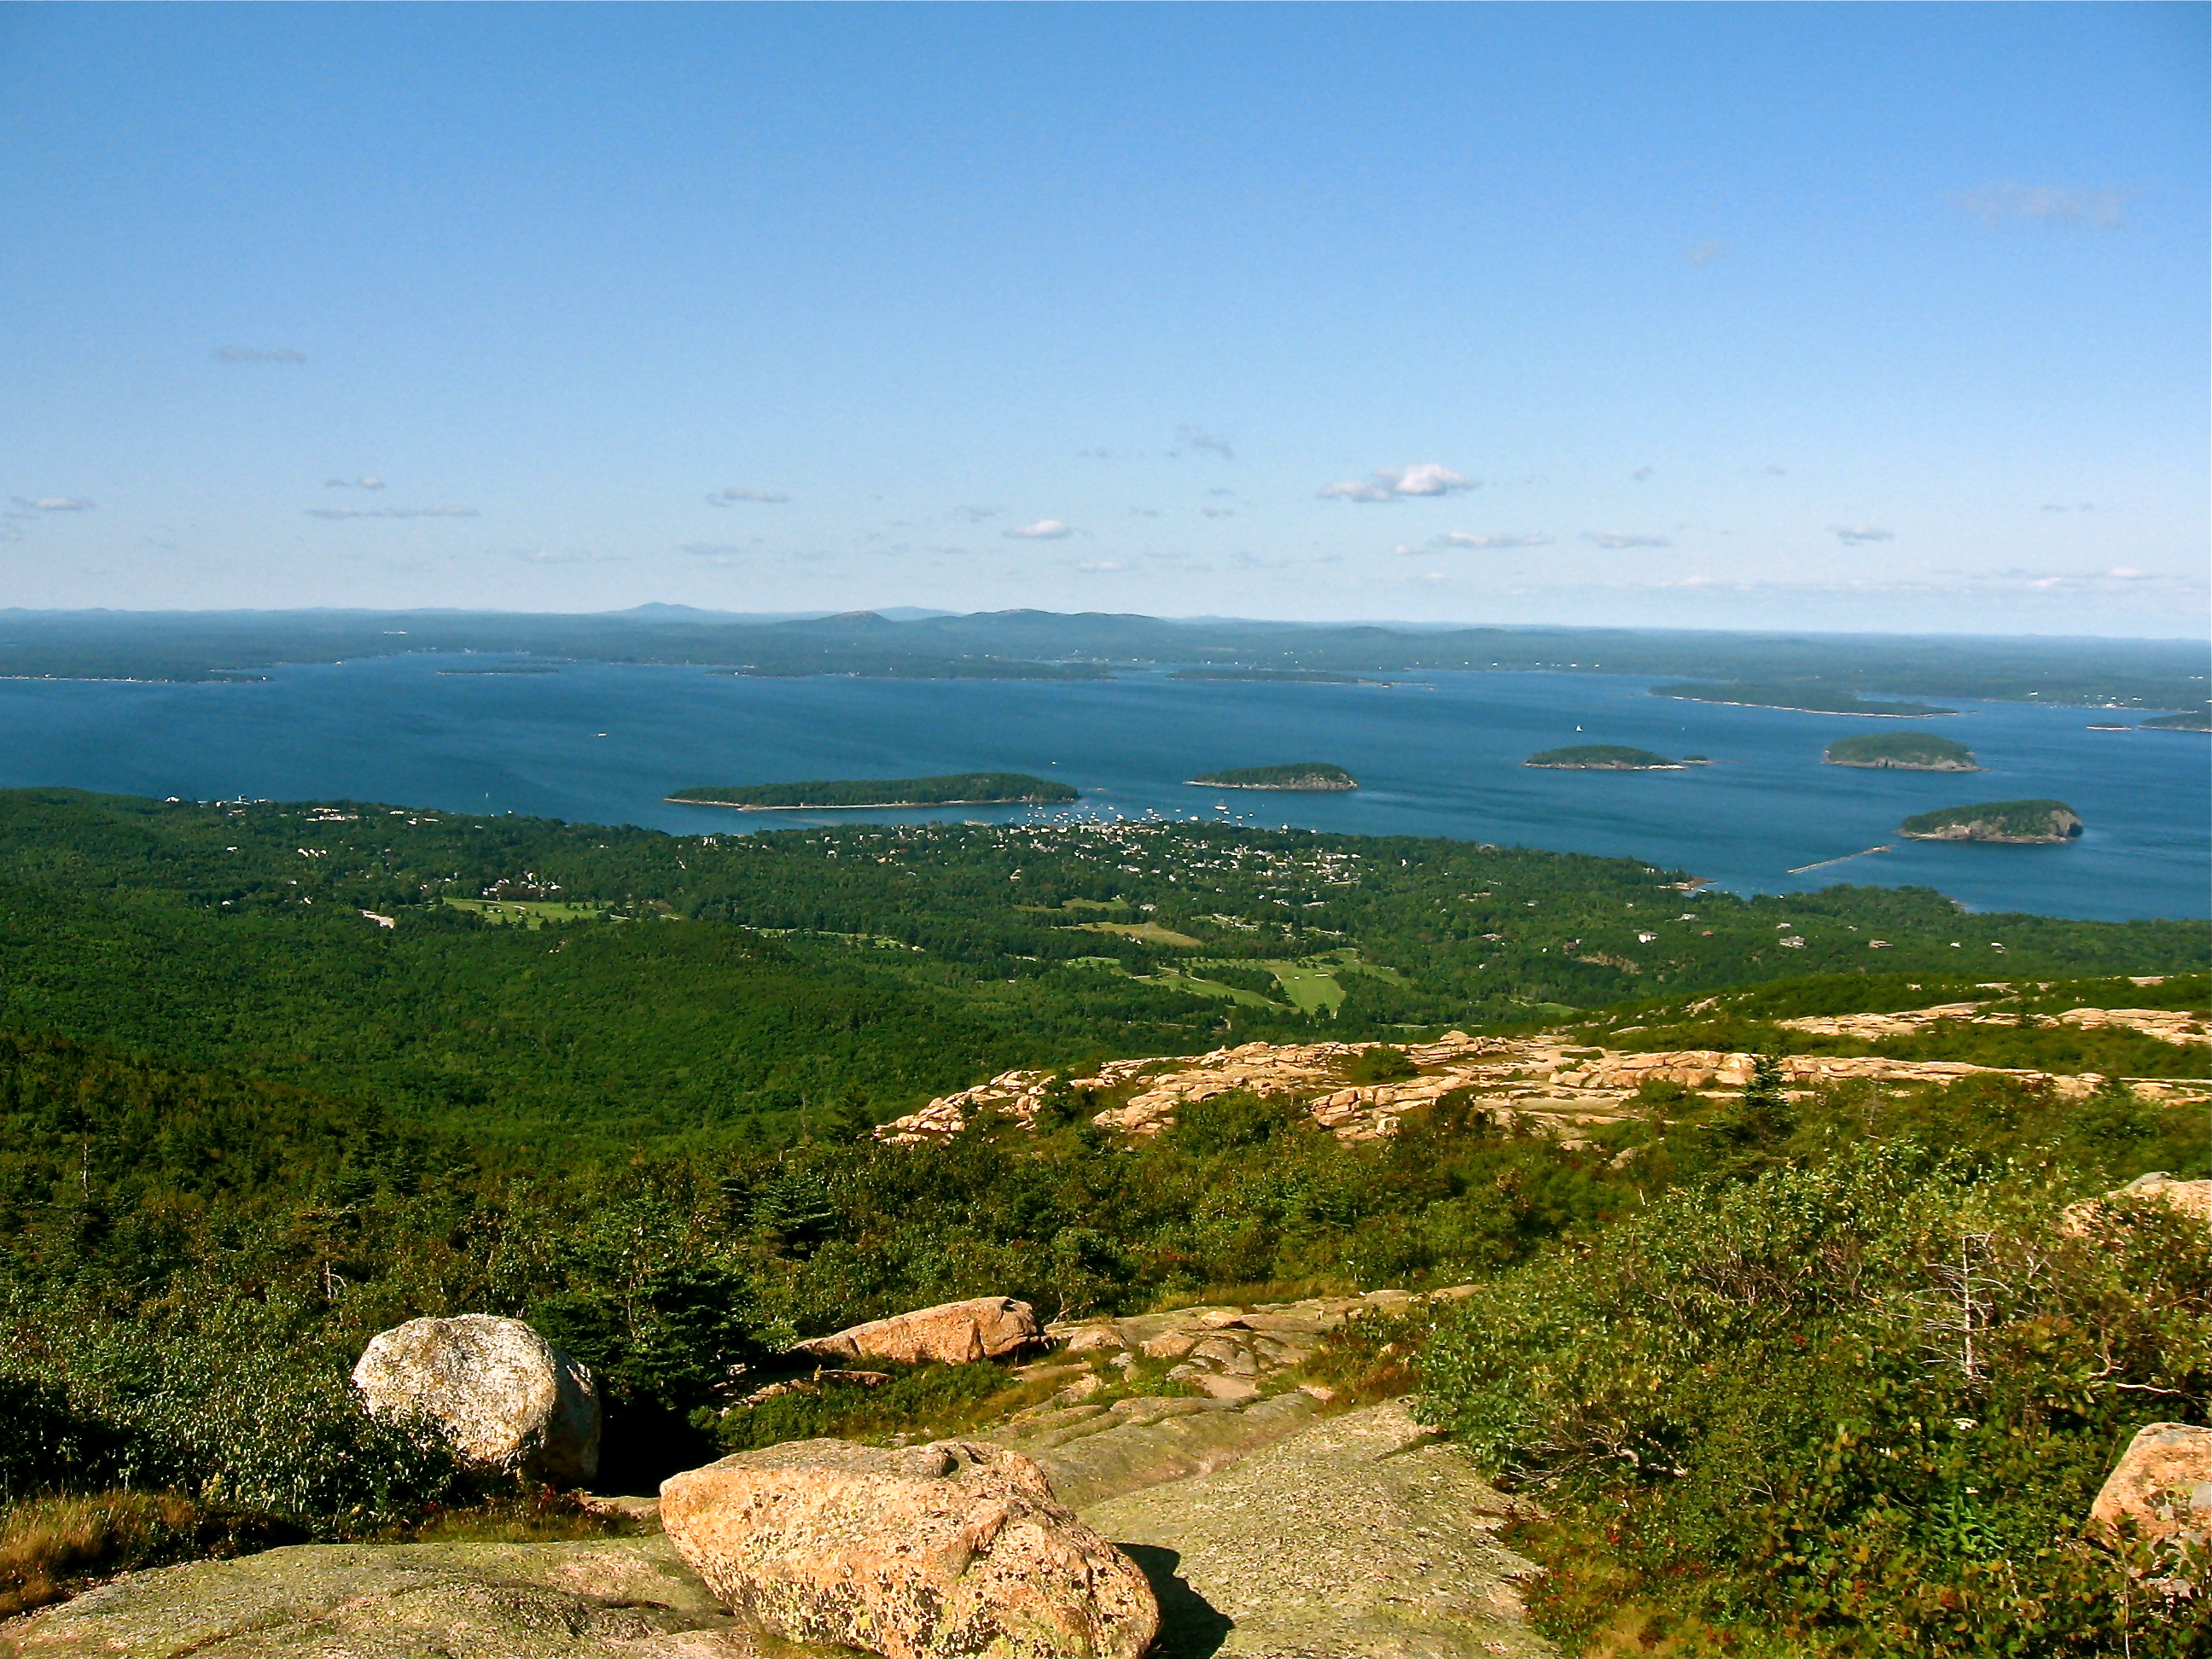 A view from Cadillac Mountain in Acadia National Park overlooking Bar Harbor.